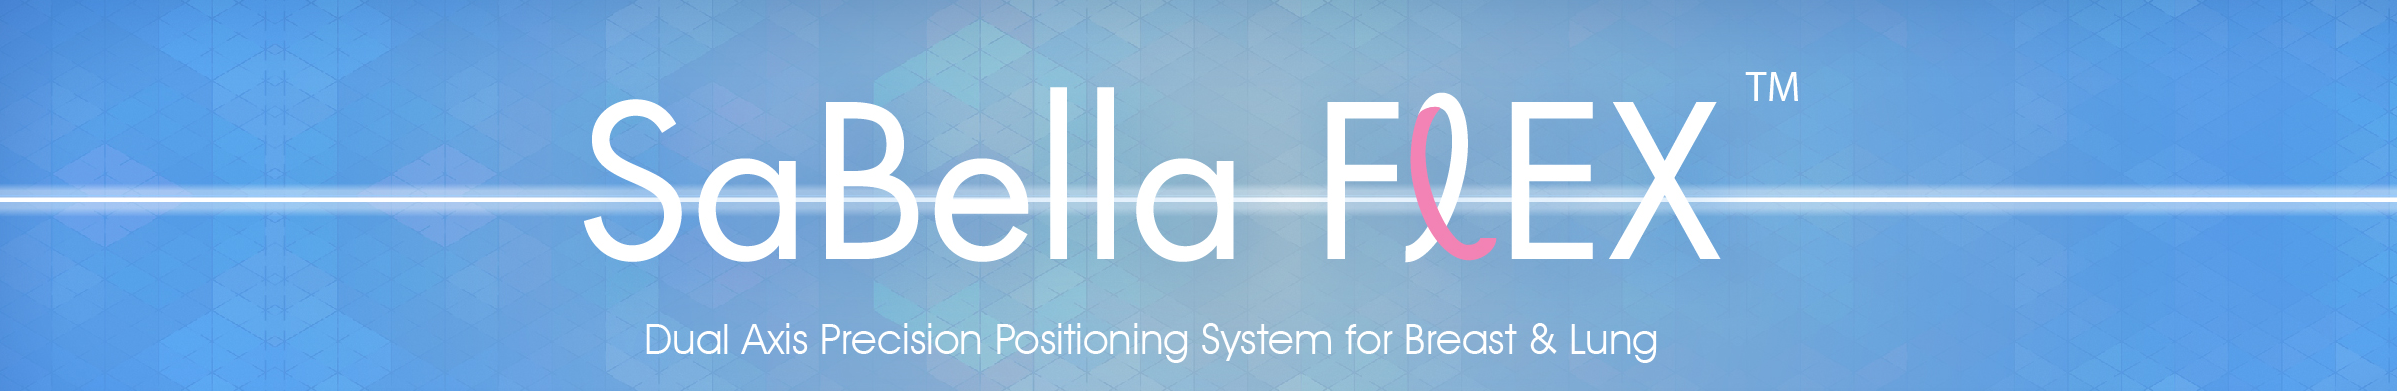 SaBella Flex Supine Breast, Thorax, Head & Neck Positioning System - not just a breast board!